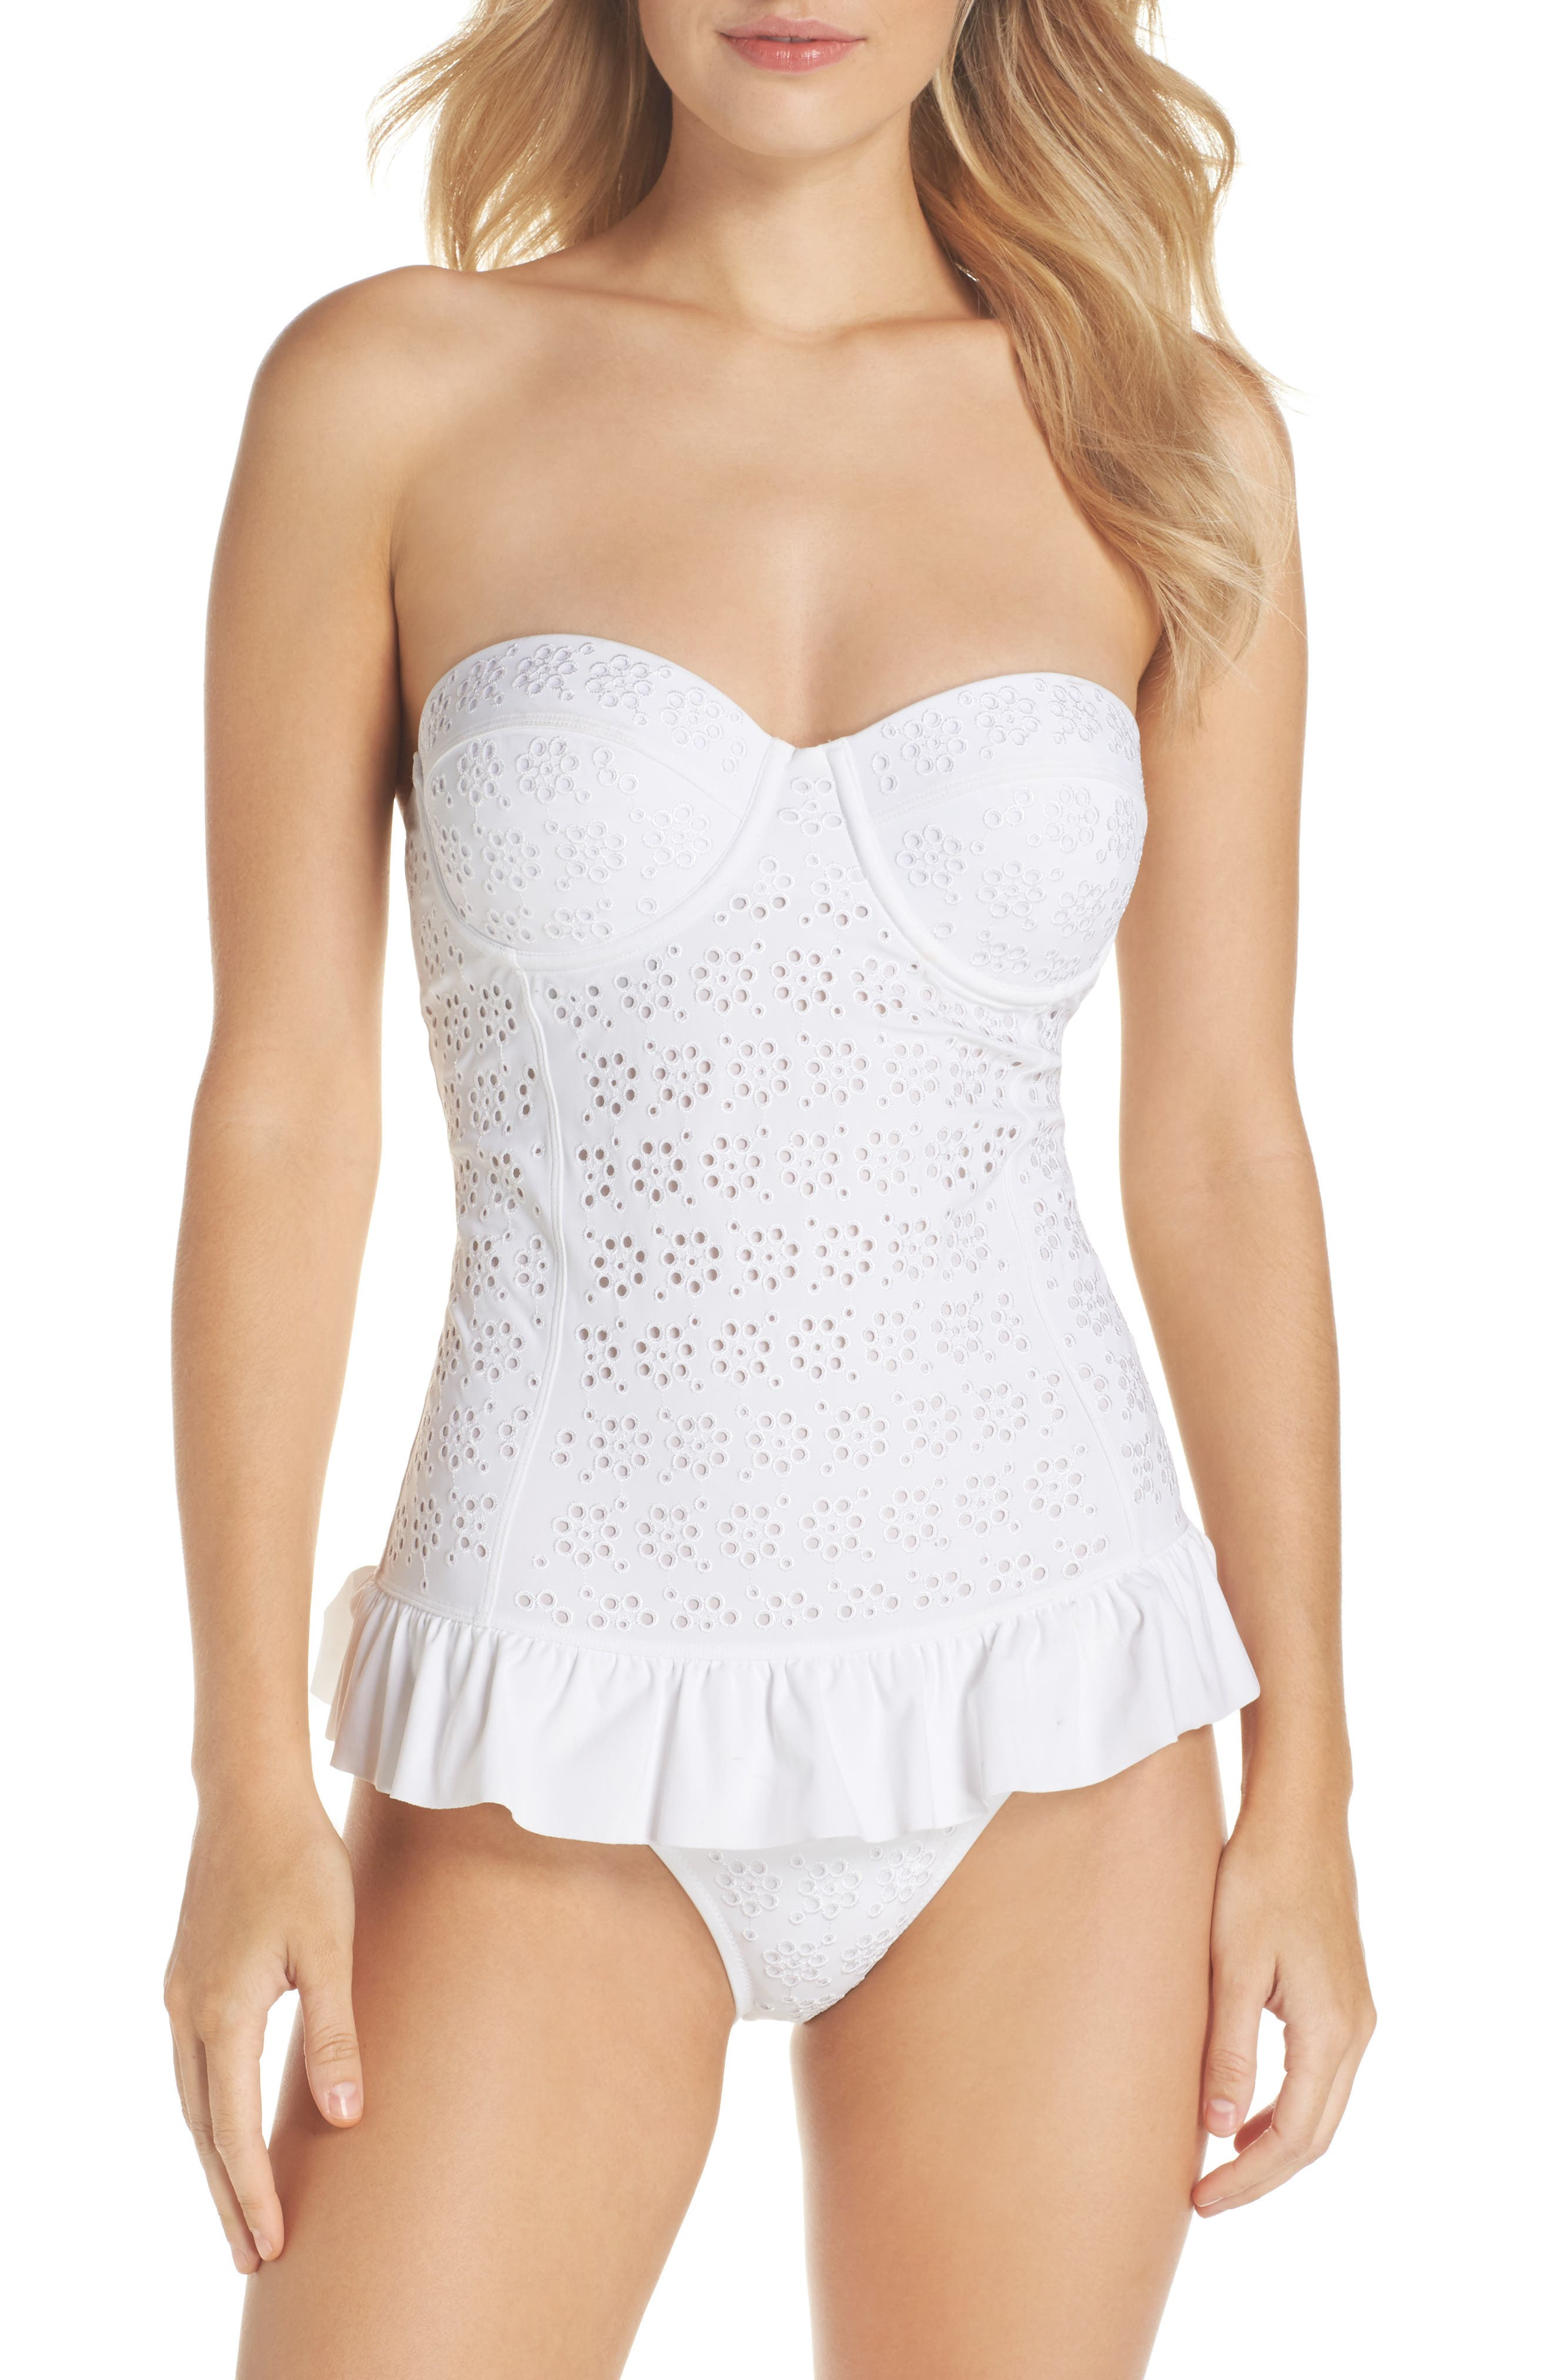 TORY BURCH,                             Broderie Anglais Flounce Convertible One-Piece Swimsuit,                             Main thumbnail 1, color,                             100